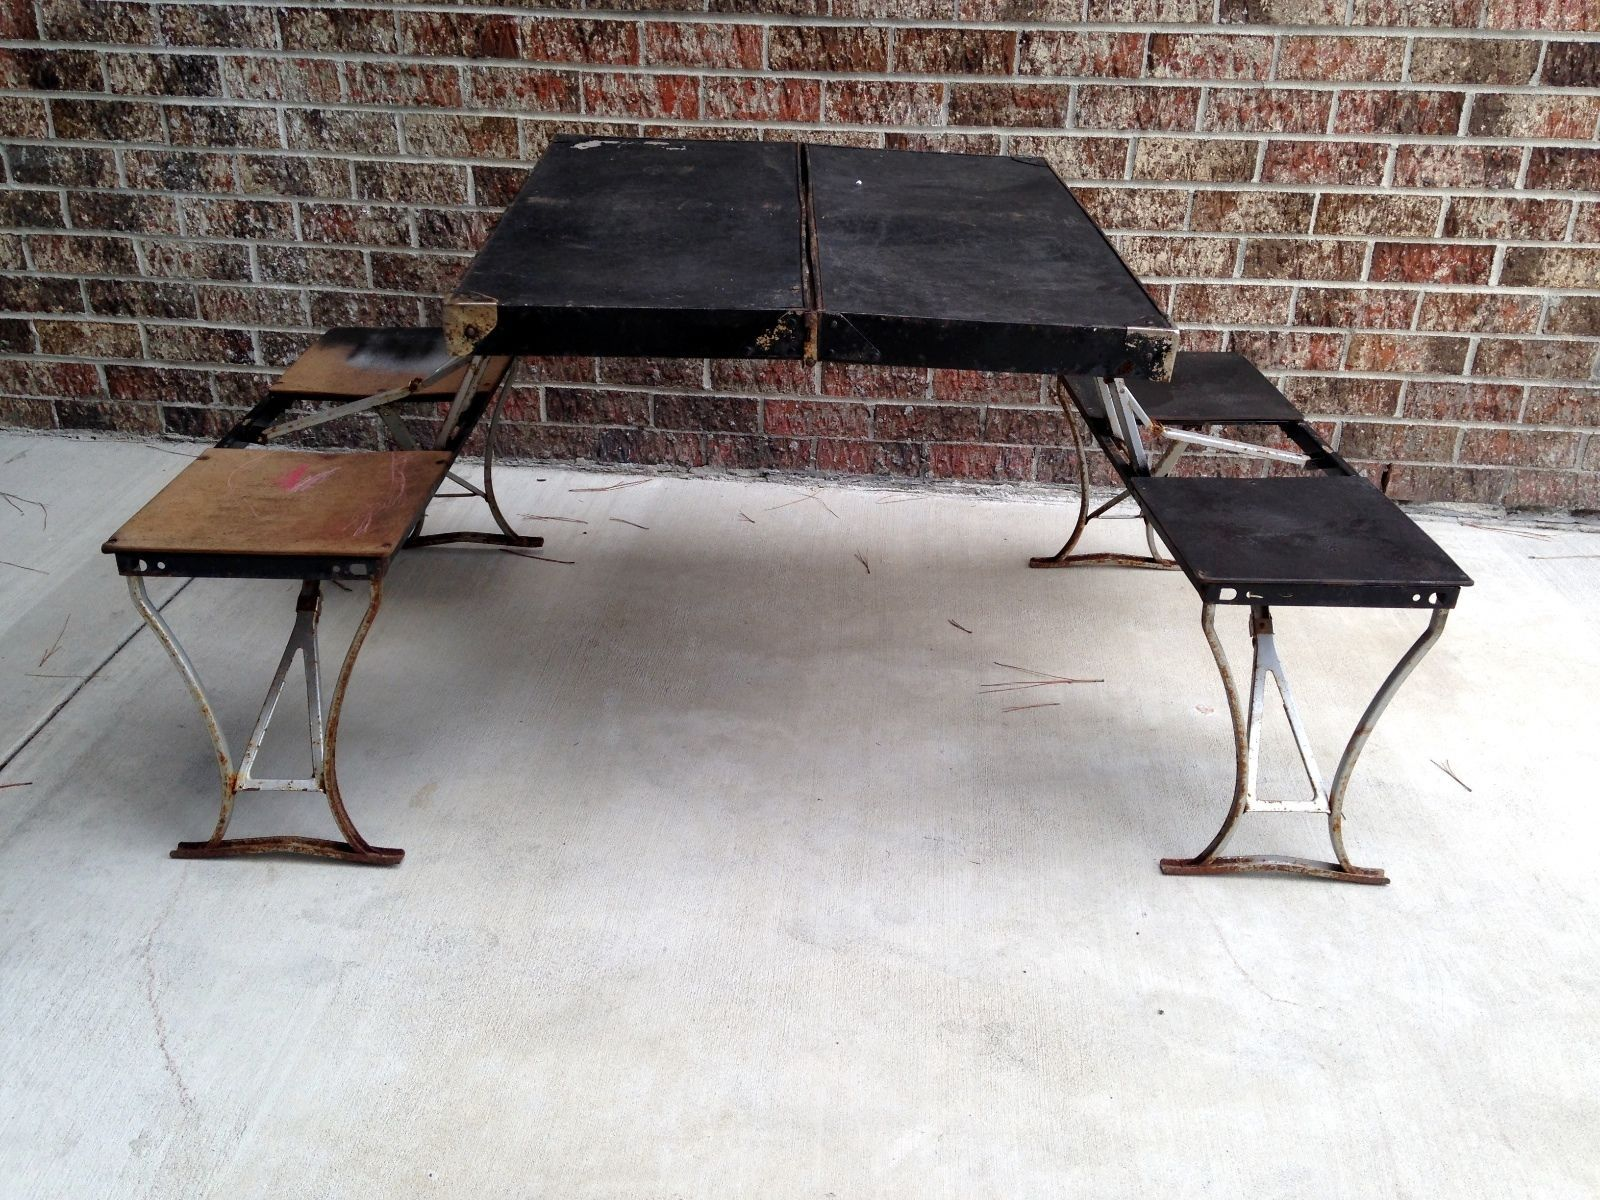 Amazing Vintage Fold Out Table K Amp S Inc Pasadena CA91107 Black Portable W Chairs  Metal |